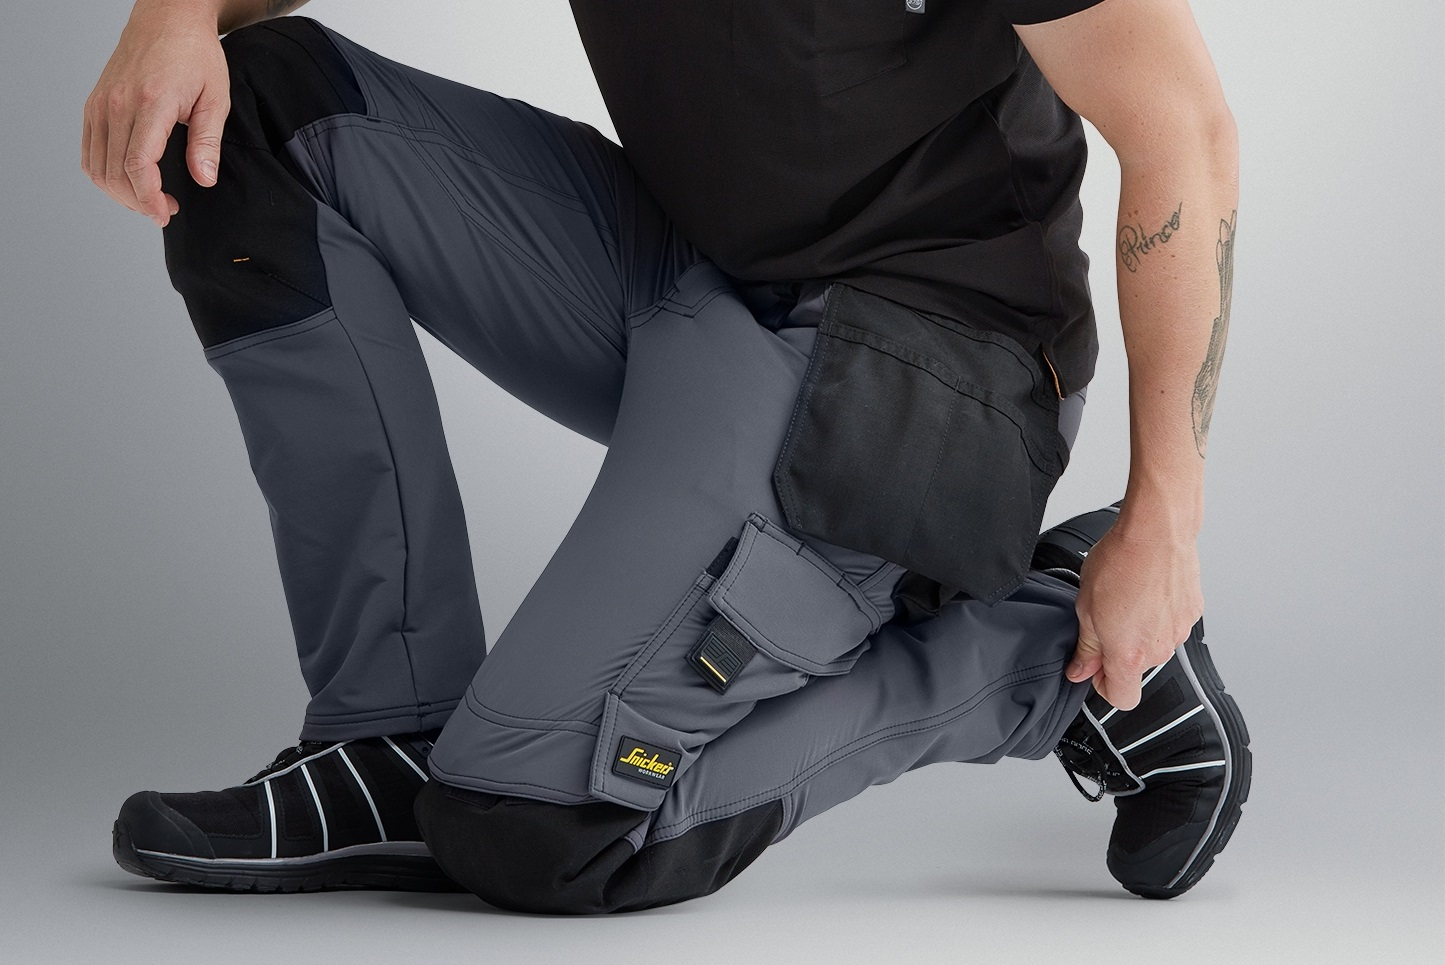 PCIAW | PCIAW News | Snickers Workwear reveals new 4-Way Stretch Trousers to give maximum mobility | Snickers Workwear | Product News